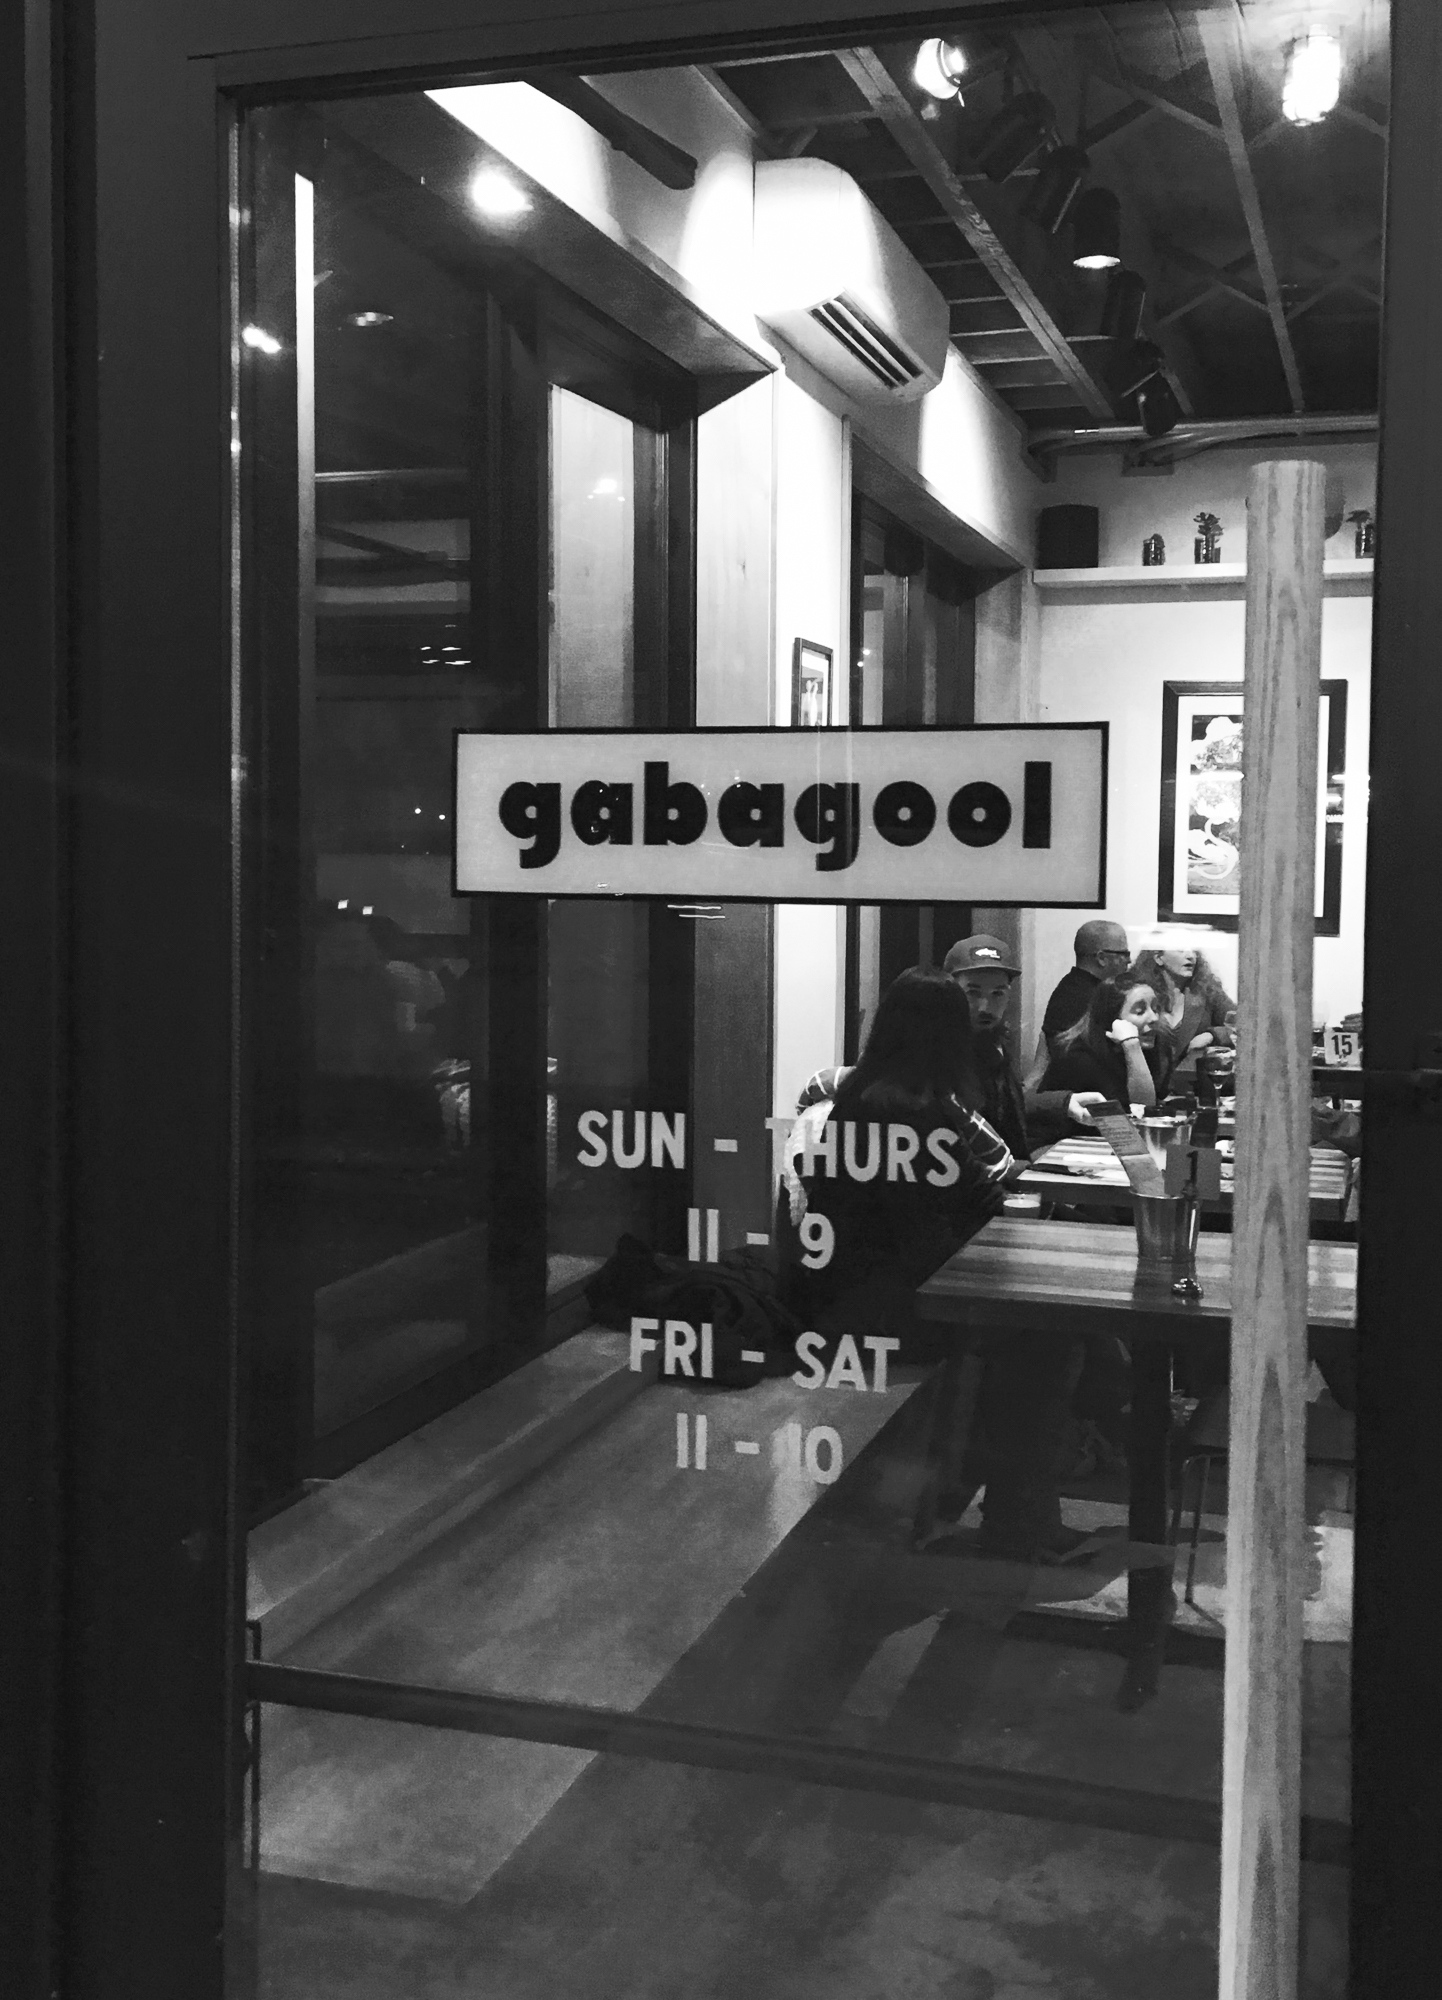 Gabagool – From Food Cart to Brick and Mortar! Great Food Great Stories by Steven Shomler